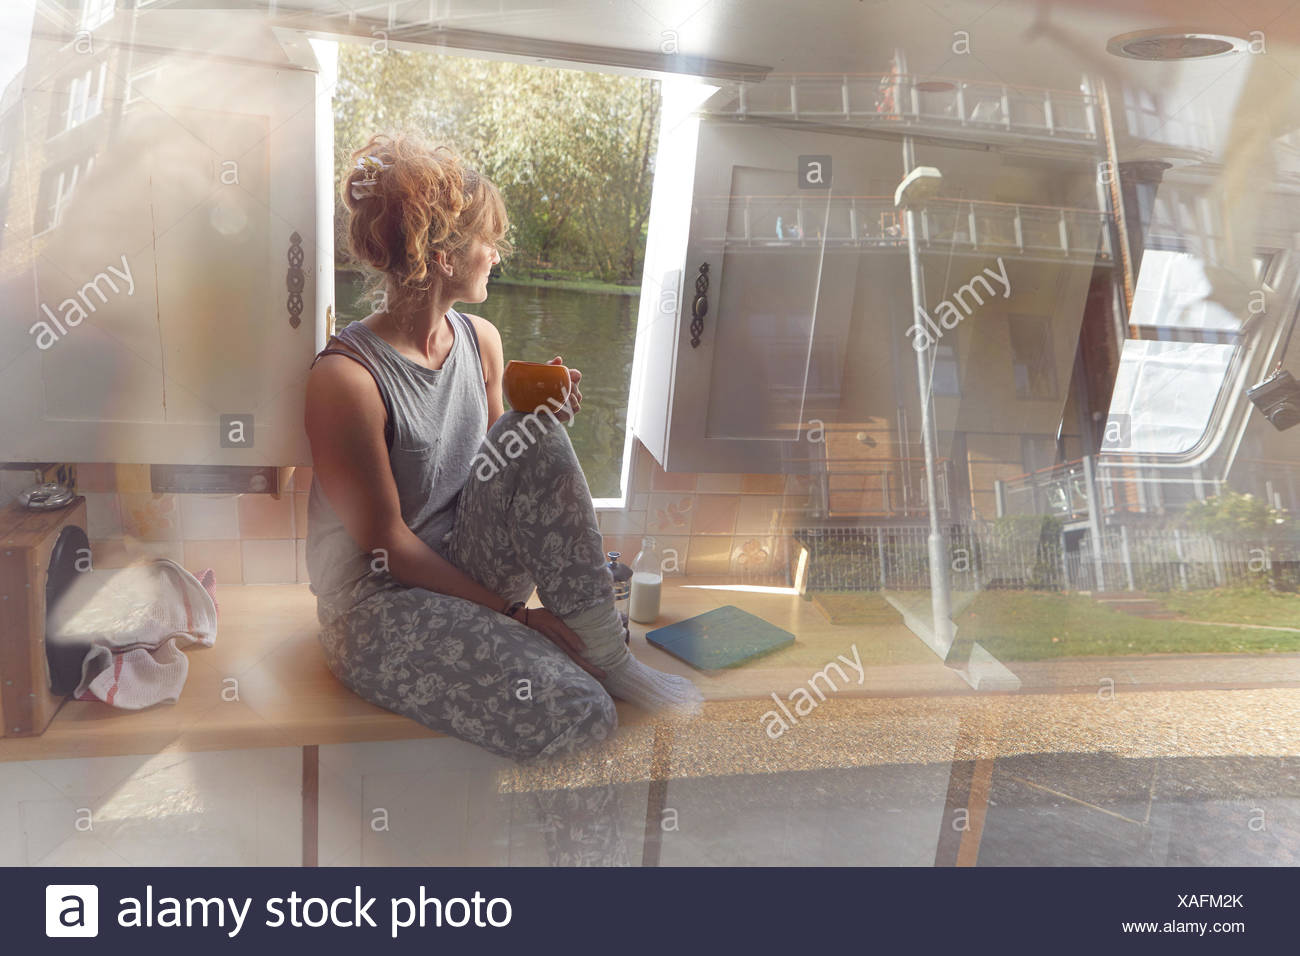 Woman having coffee on canal boat, view through window - Stock Image